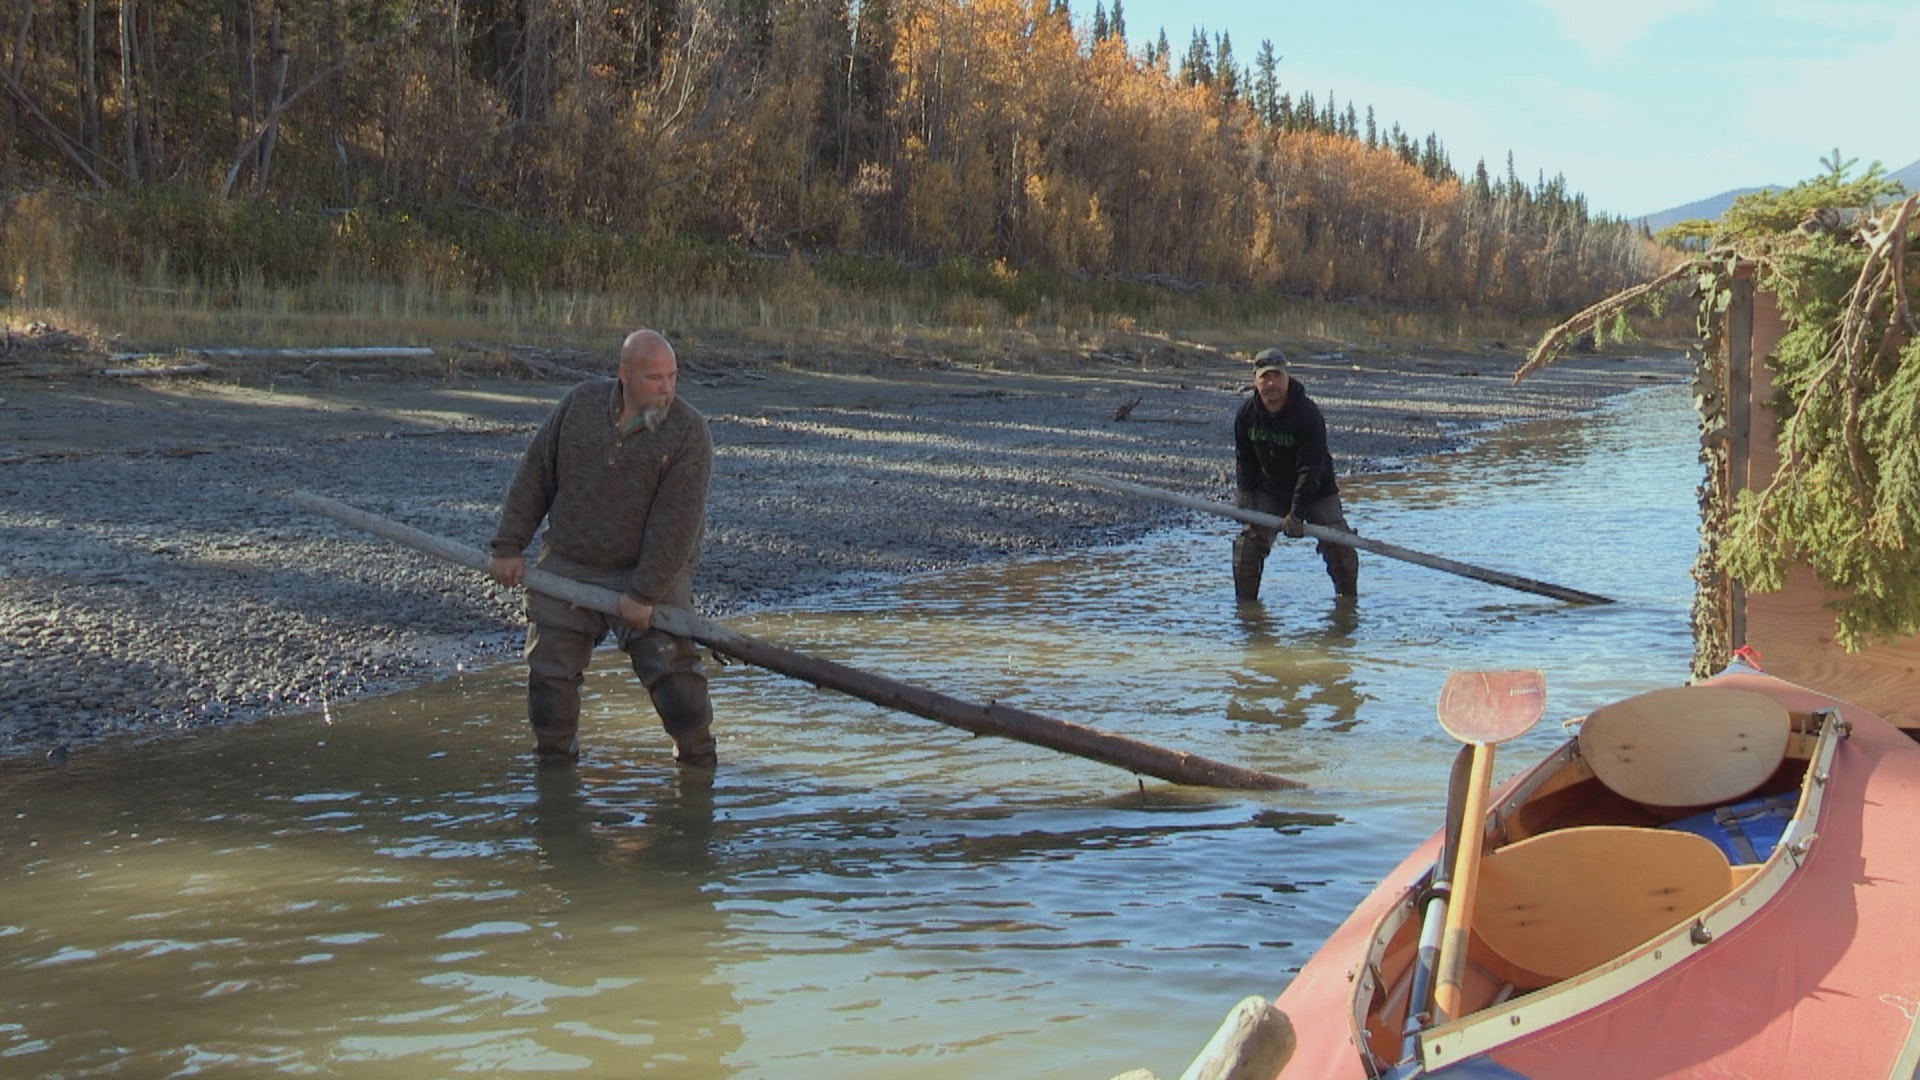 YUKON RIVER, Alaska - Lance Kramer and Charles Keeter prying their raft free. (Photo Credit: National Geographic Channels/Eric Babisch)